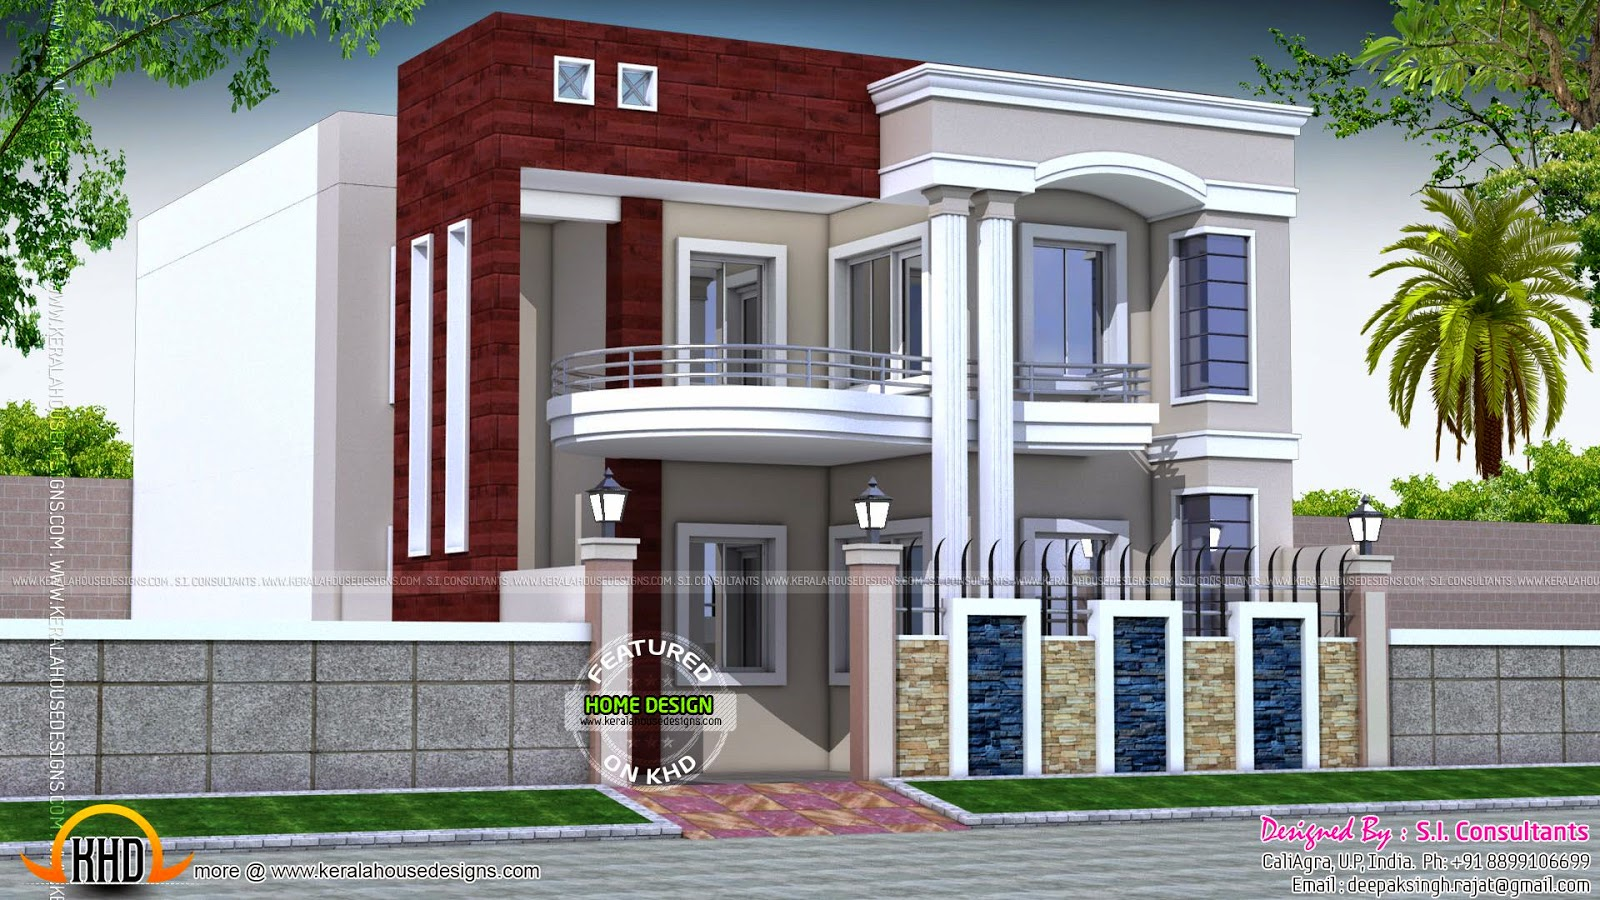 House design in north india kerala home design and floor for 2 bedroom house plans in india